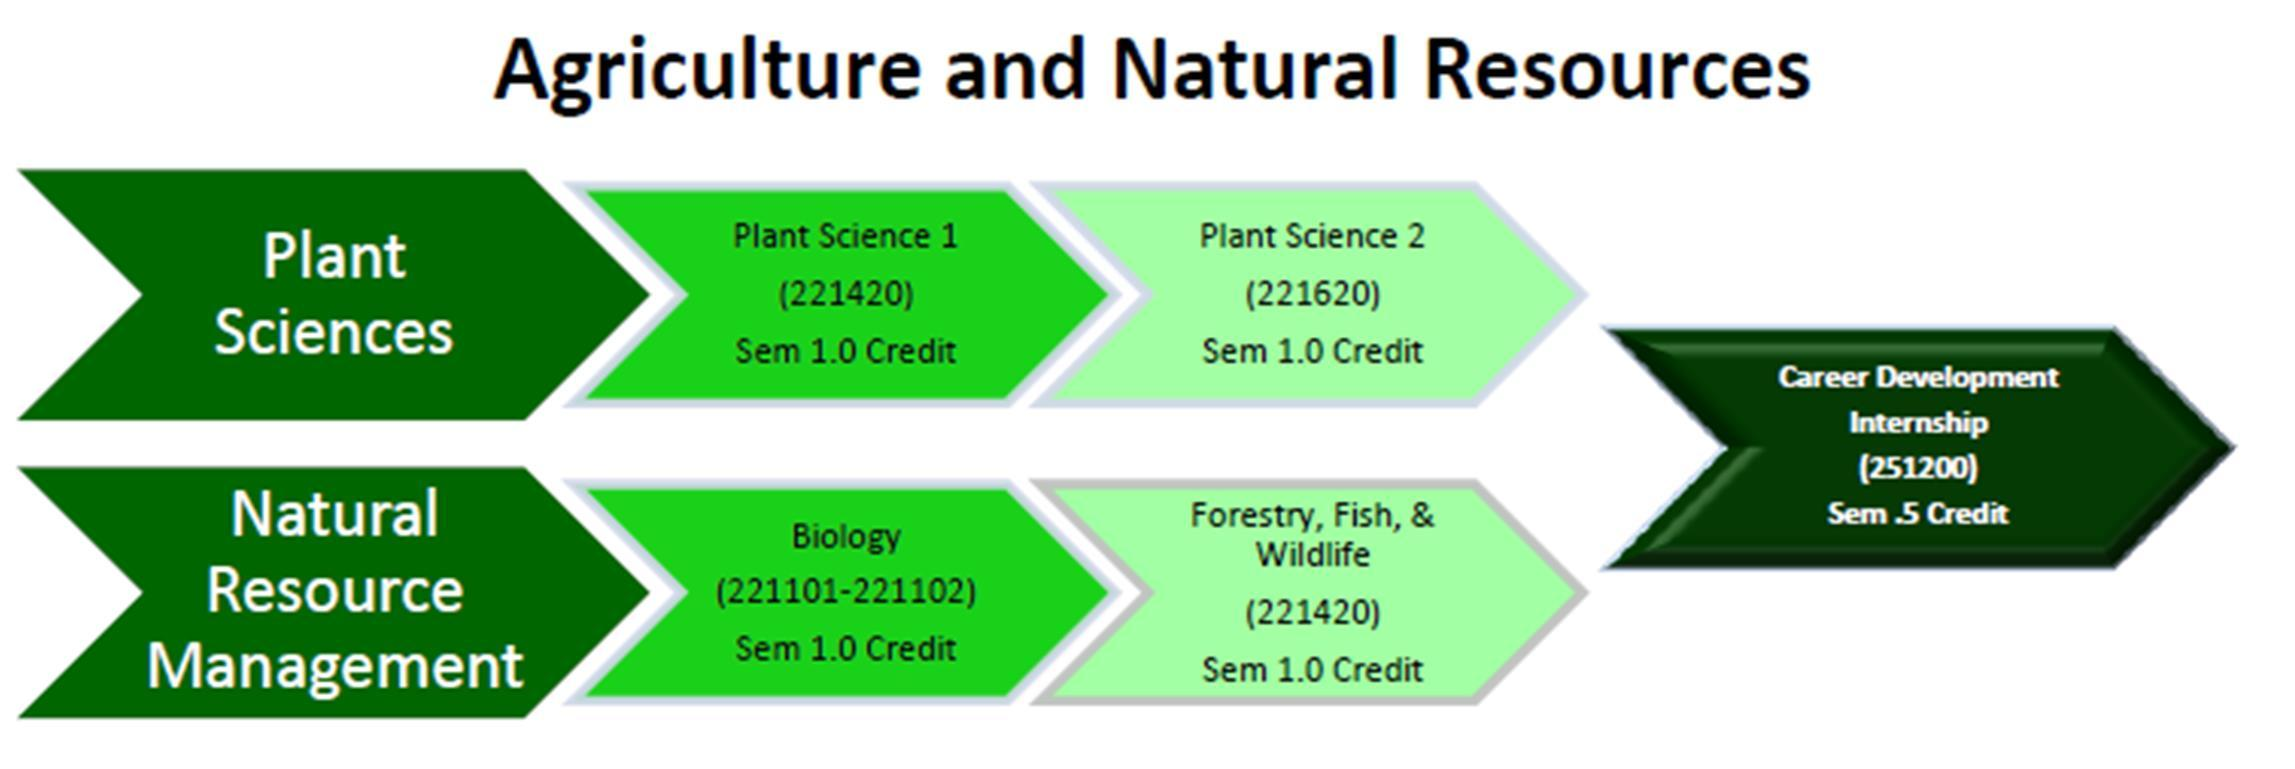 Agriculture and Natural Resources